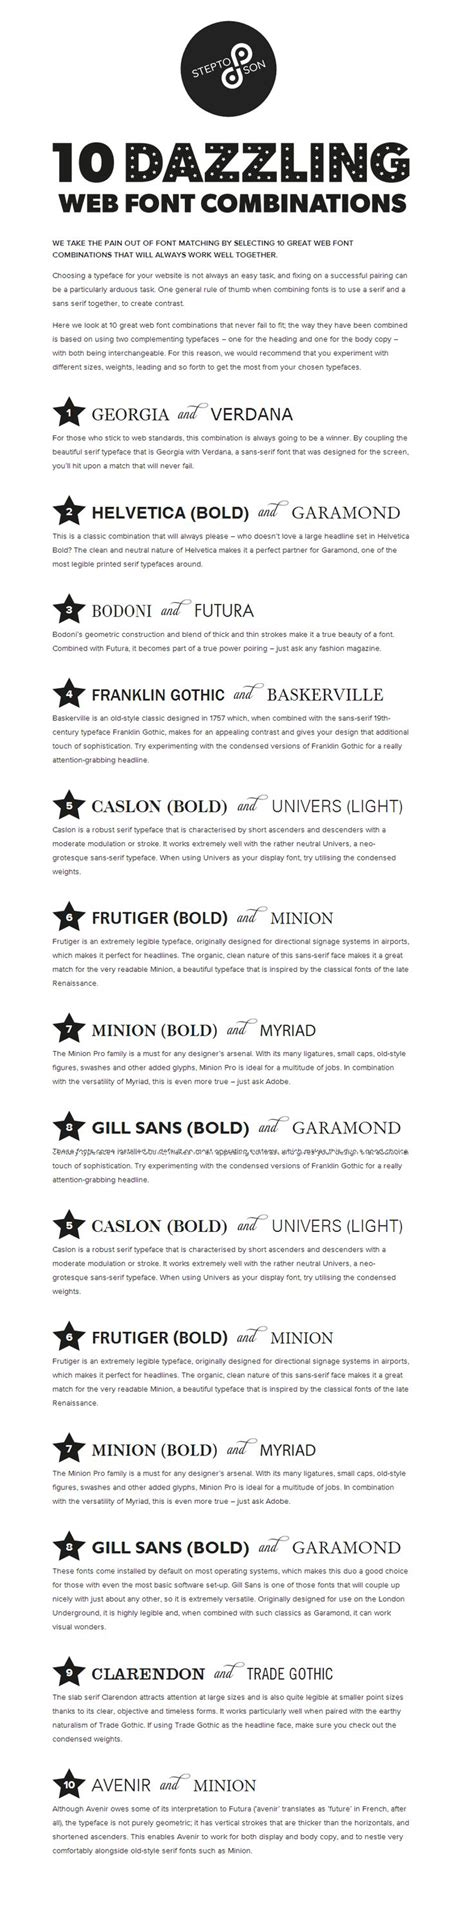 Font Style For Resume by 10 Great Web Font Combinations For Your Resume Resume